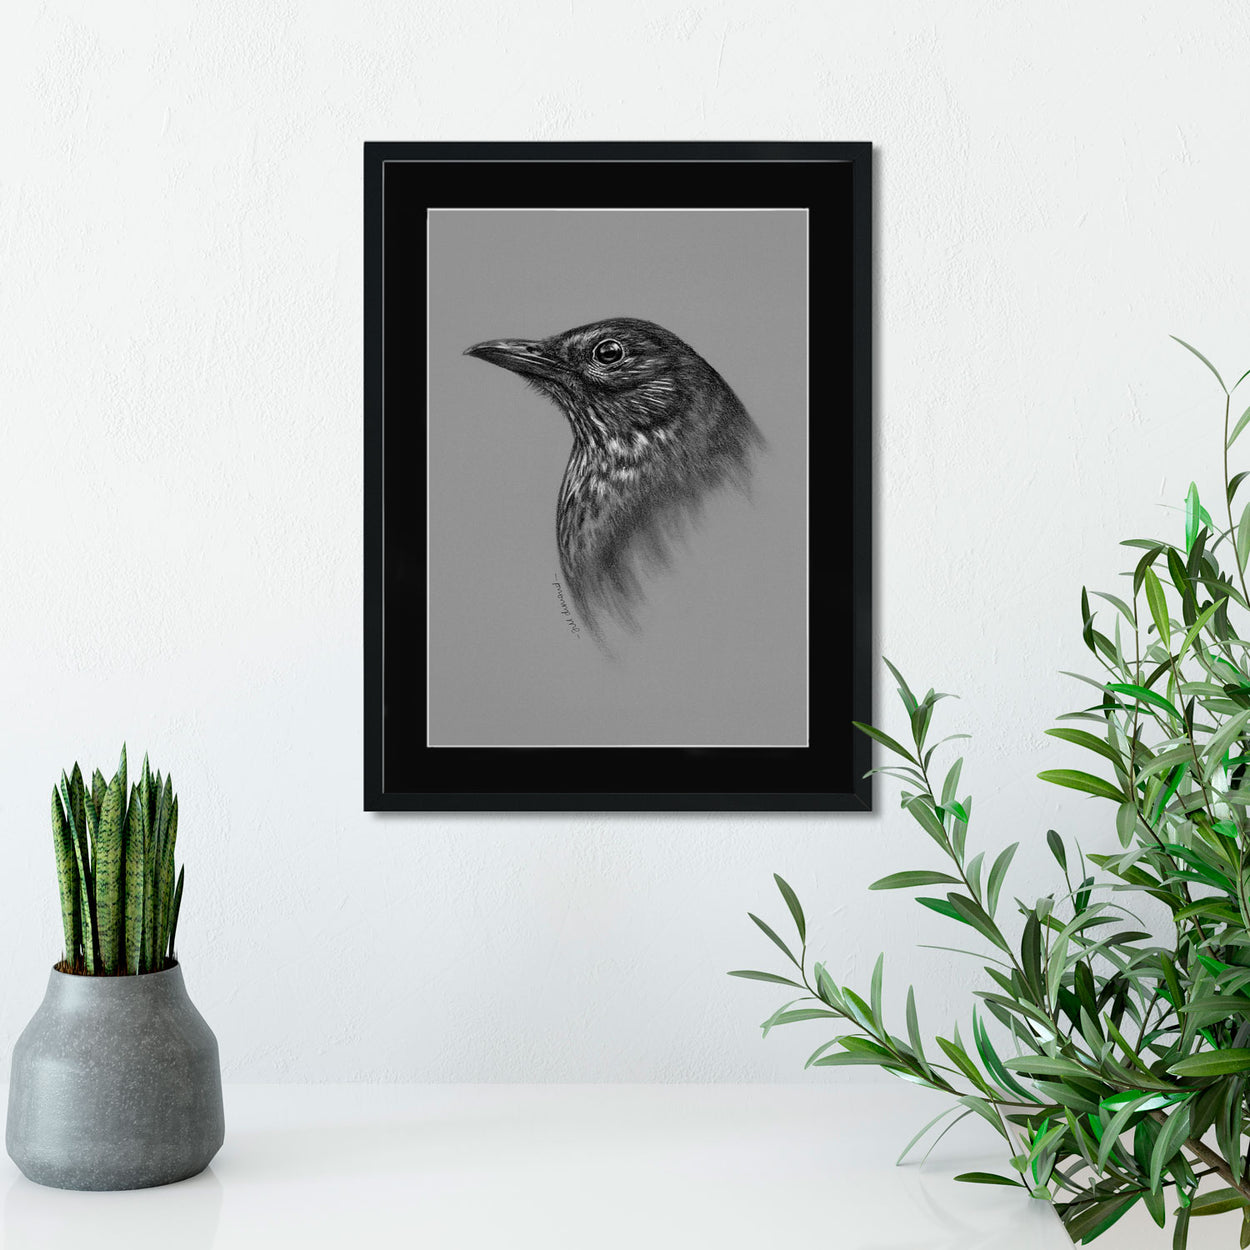 Blackbird Drawing on wall - The Thriving Wild